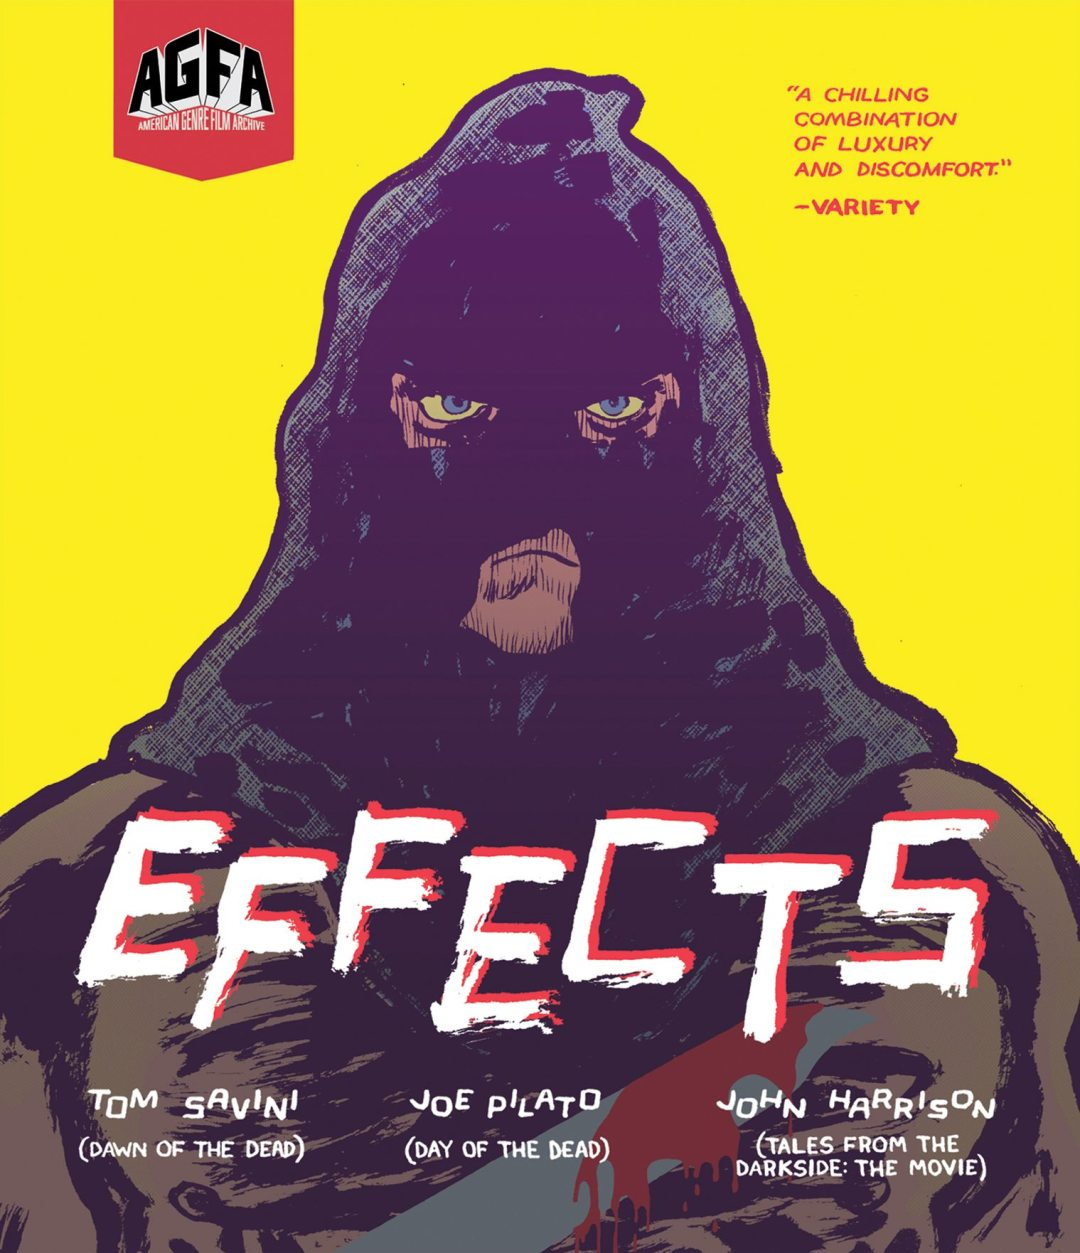 American Genre Film Archive (AGFA) to Release 'Effects' on 8/22